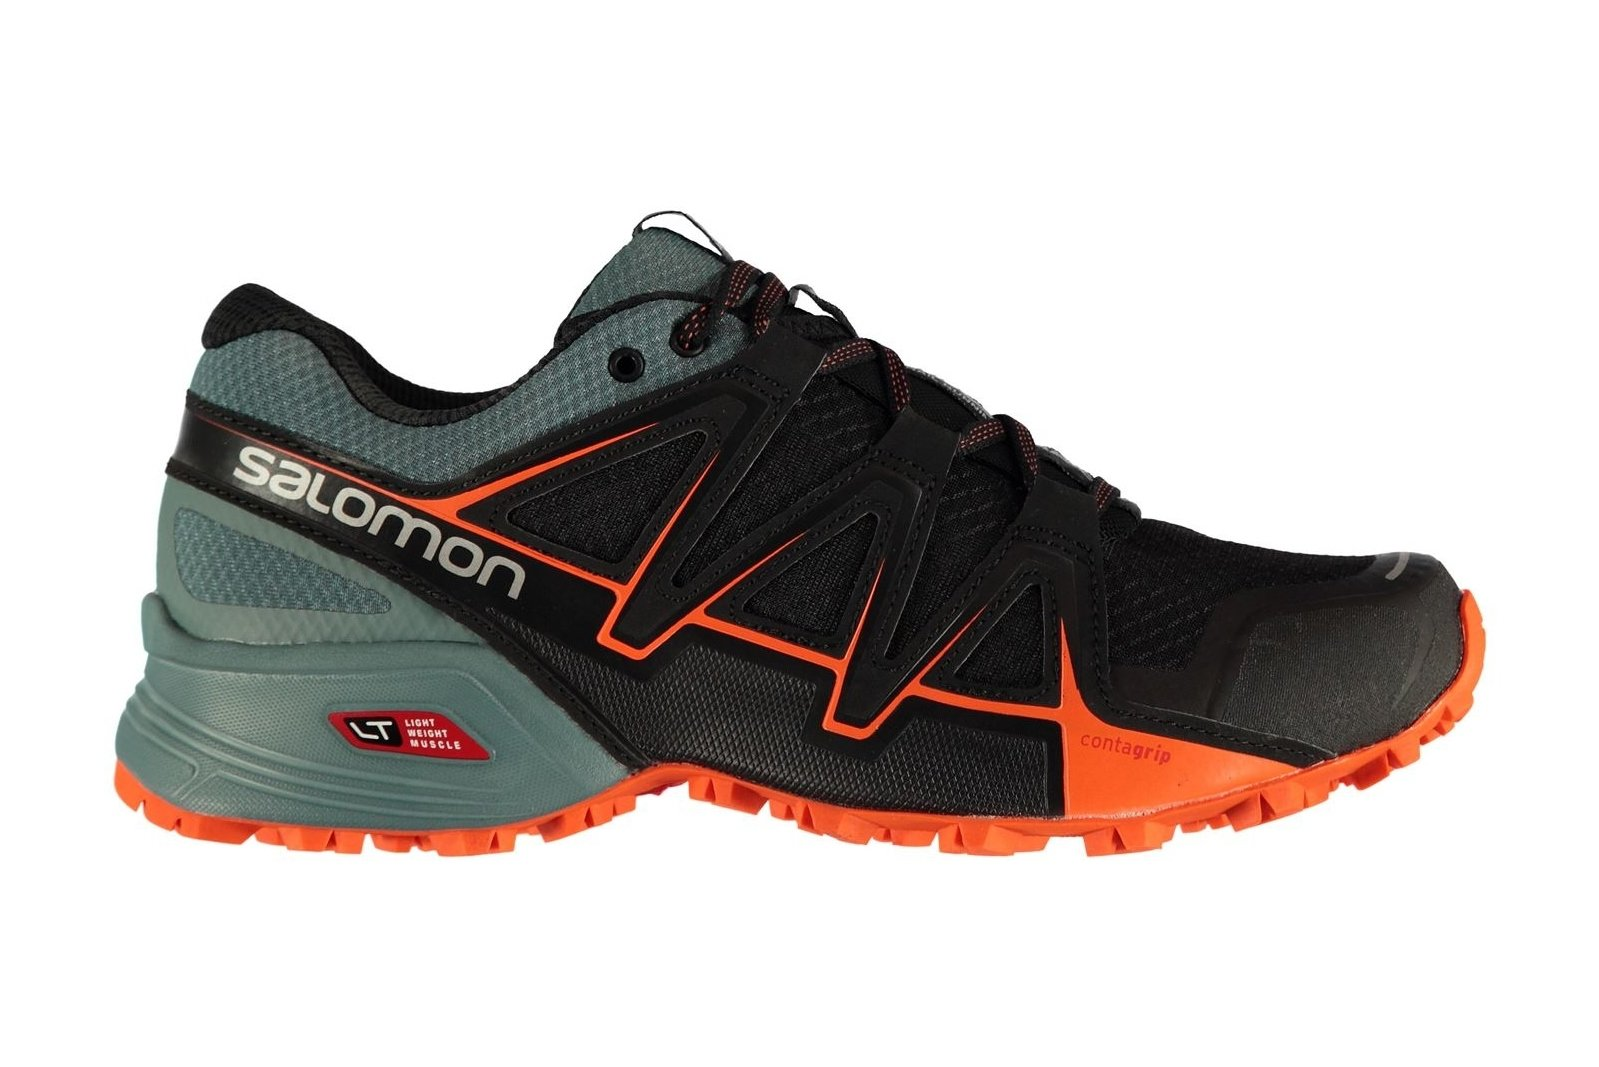 Details about Salomon Mens Speedcross Vario 2 Mens Trail Running Shoes Trainers